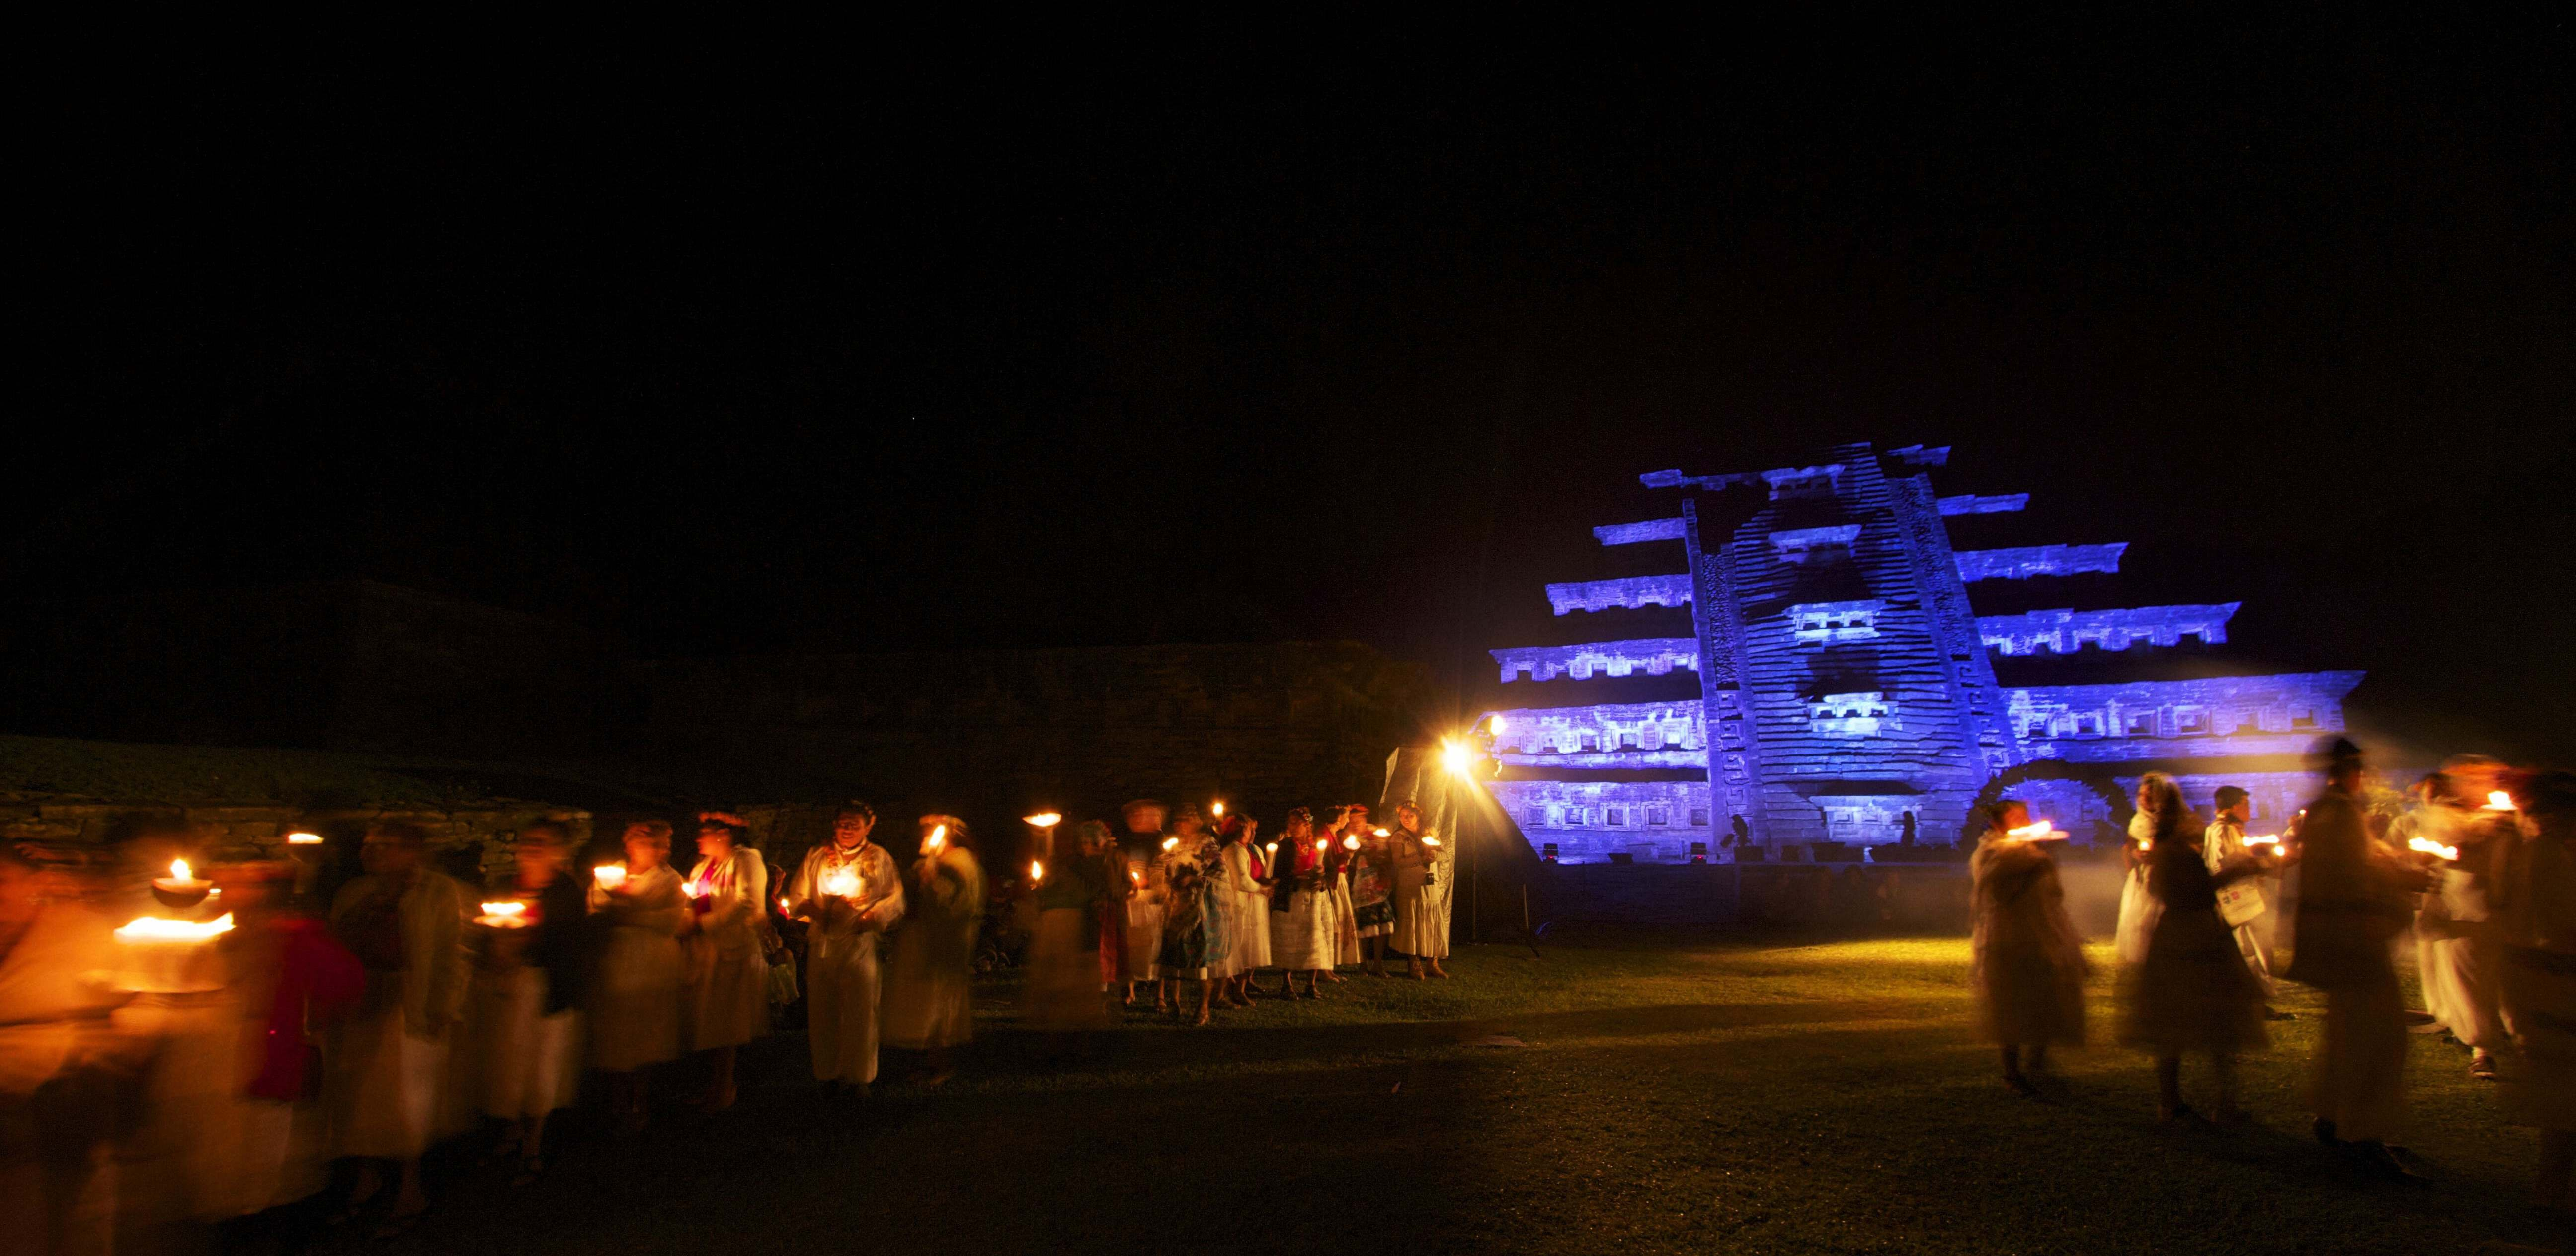 Totonacs perform a ritual at the Pyramid of the Niches, El Tajín. (Photo by Frederick Bernas)